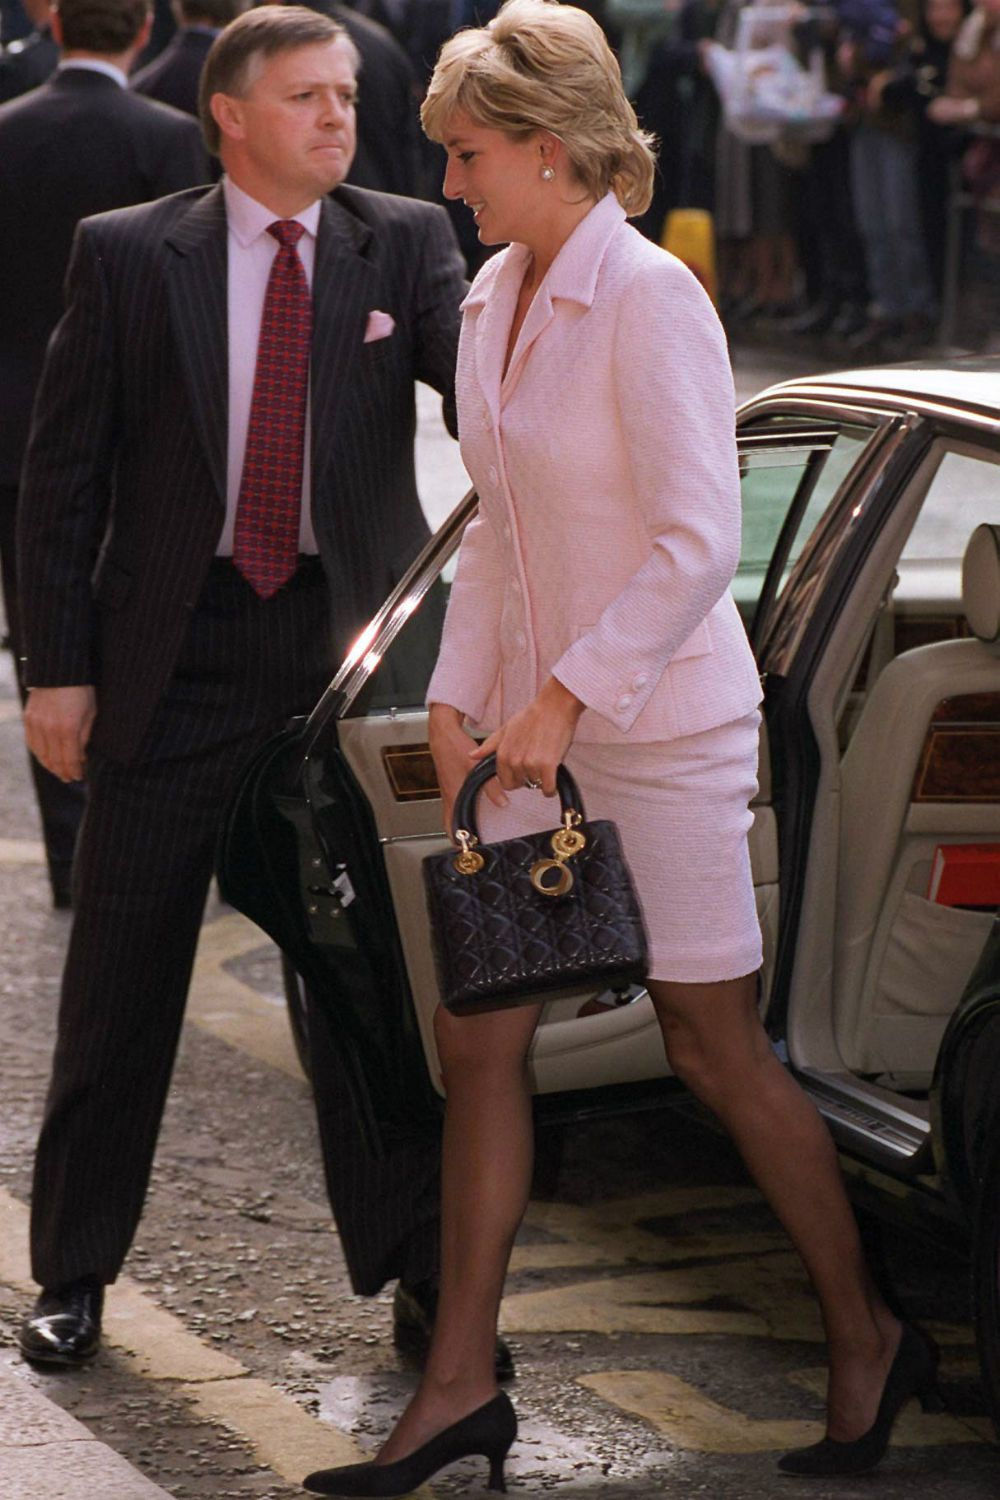 Princess Diana exiting a car in a pink suit